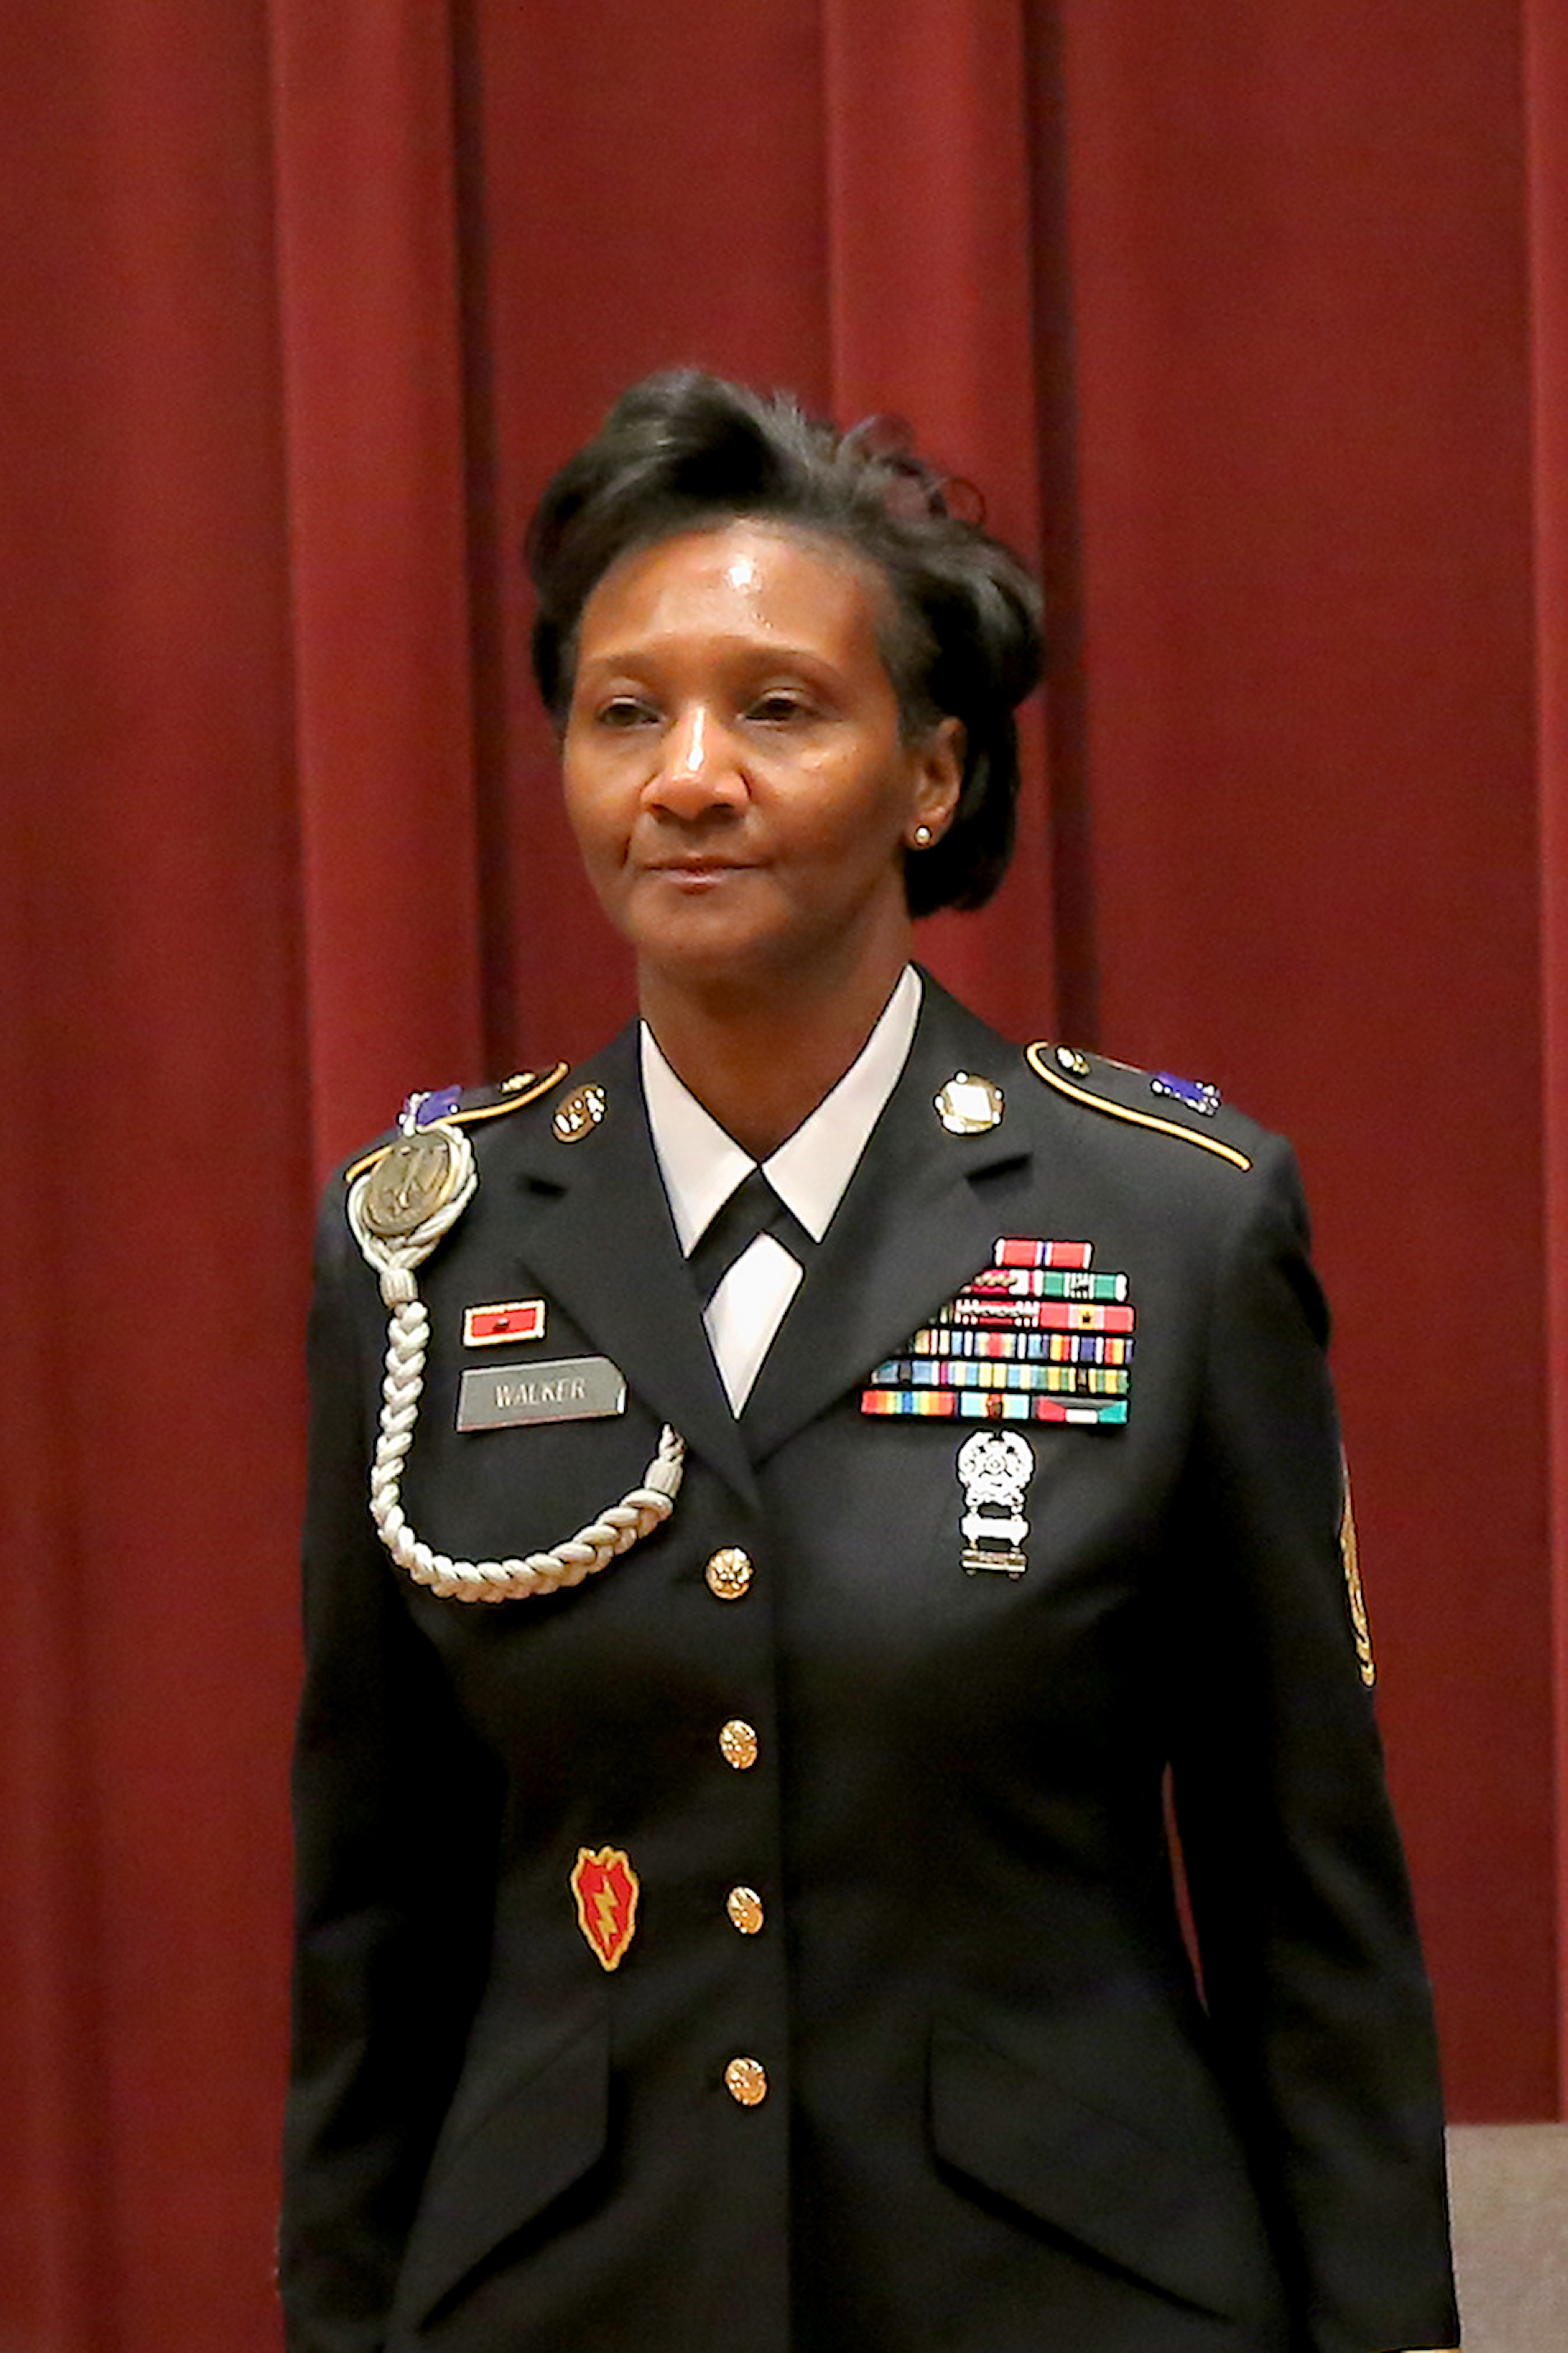 CSM Walker retirement ceremony conducted